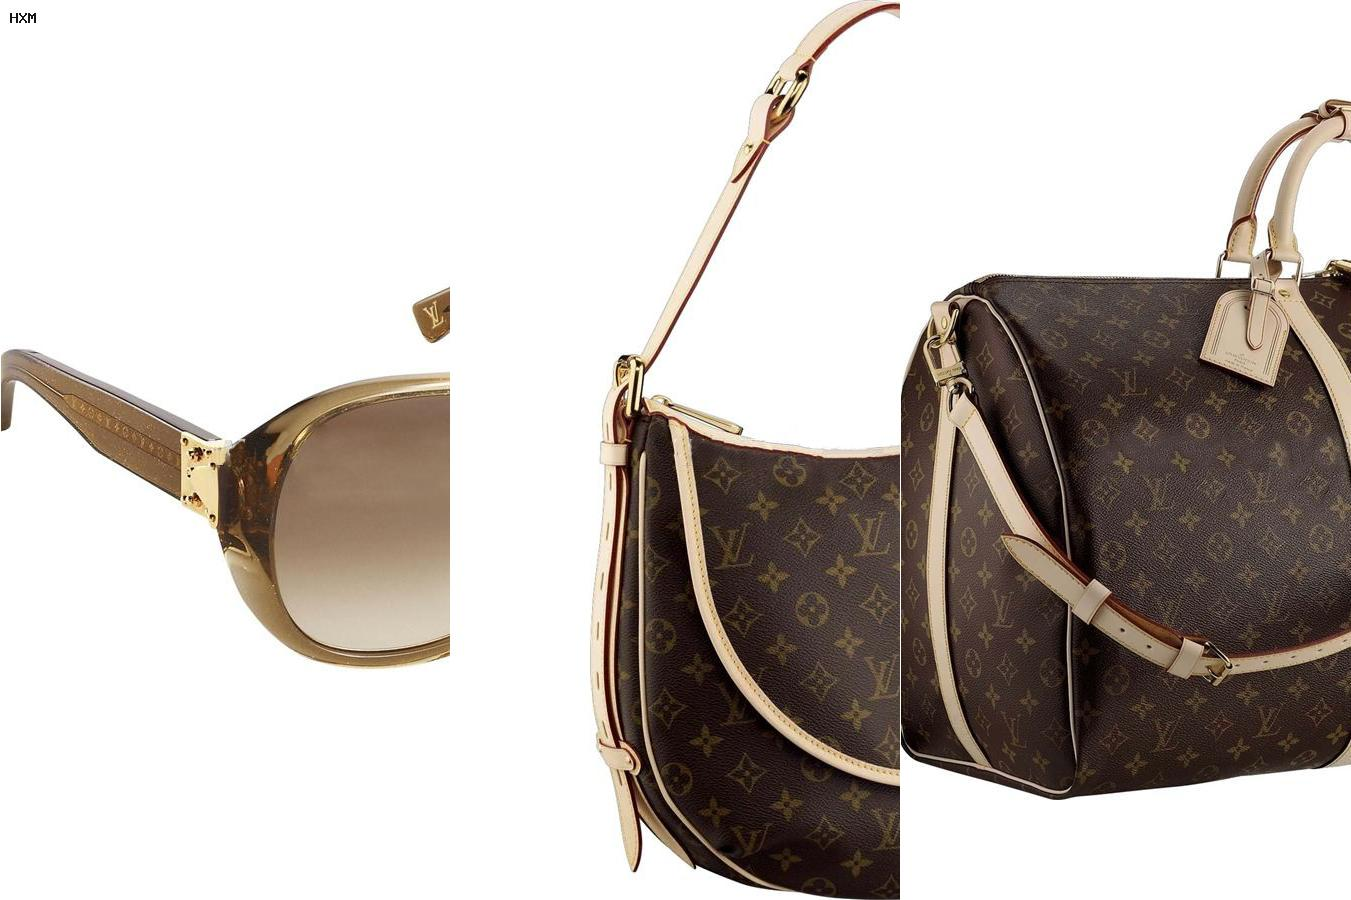 louis vuitton tas heren origineel